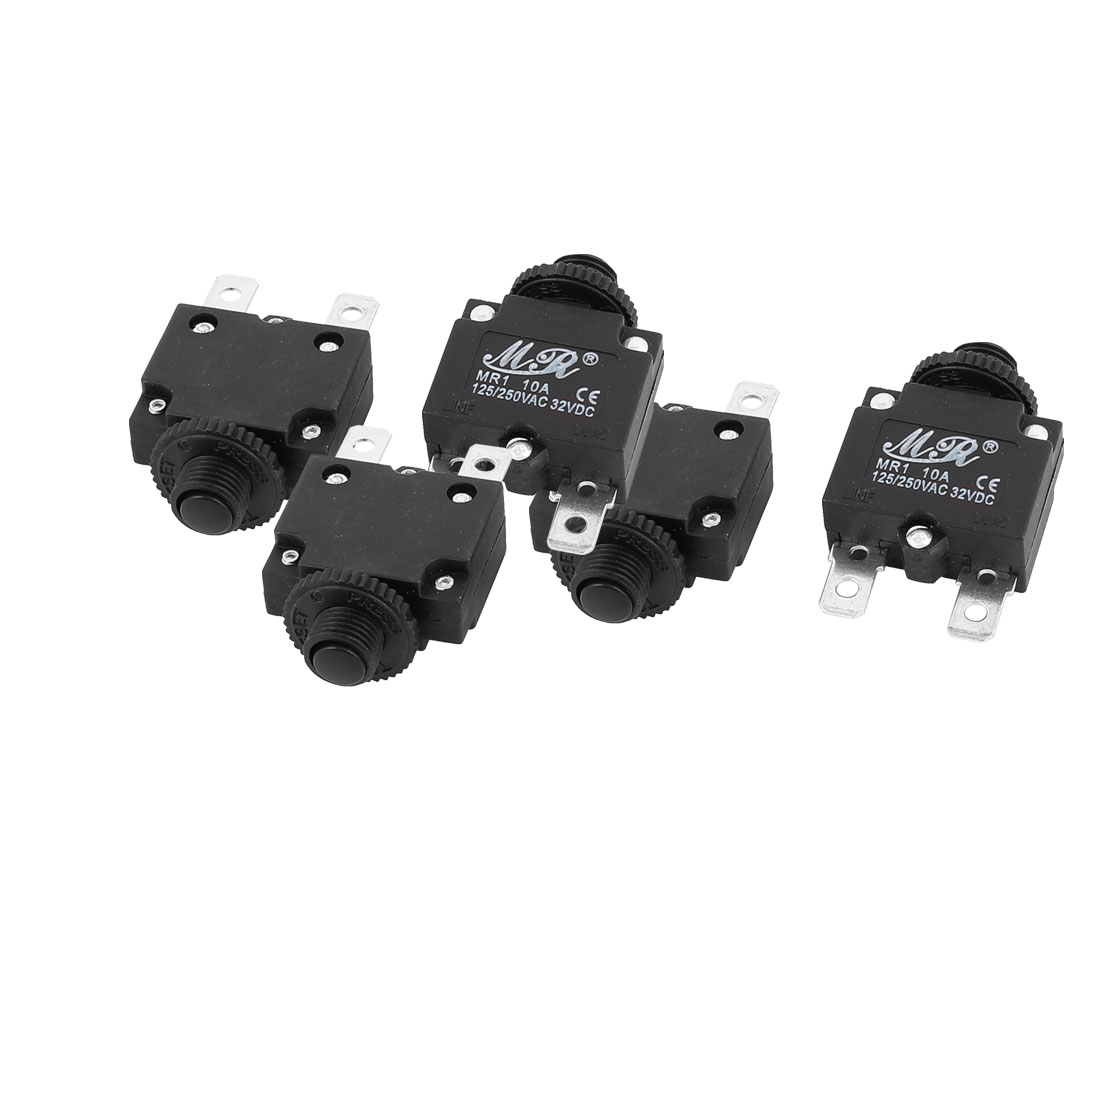 5Pcs  125/250V/32VDC 10A Circuit Breaker Current Overload Protector Switch